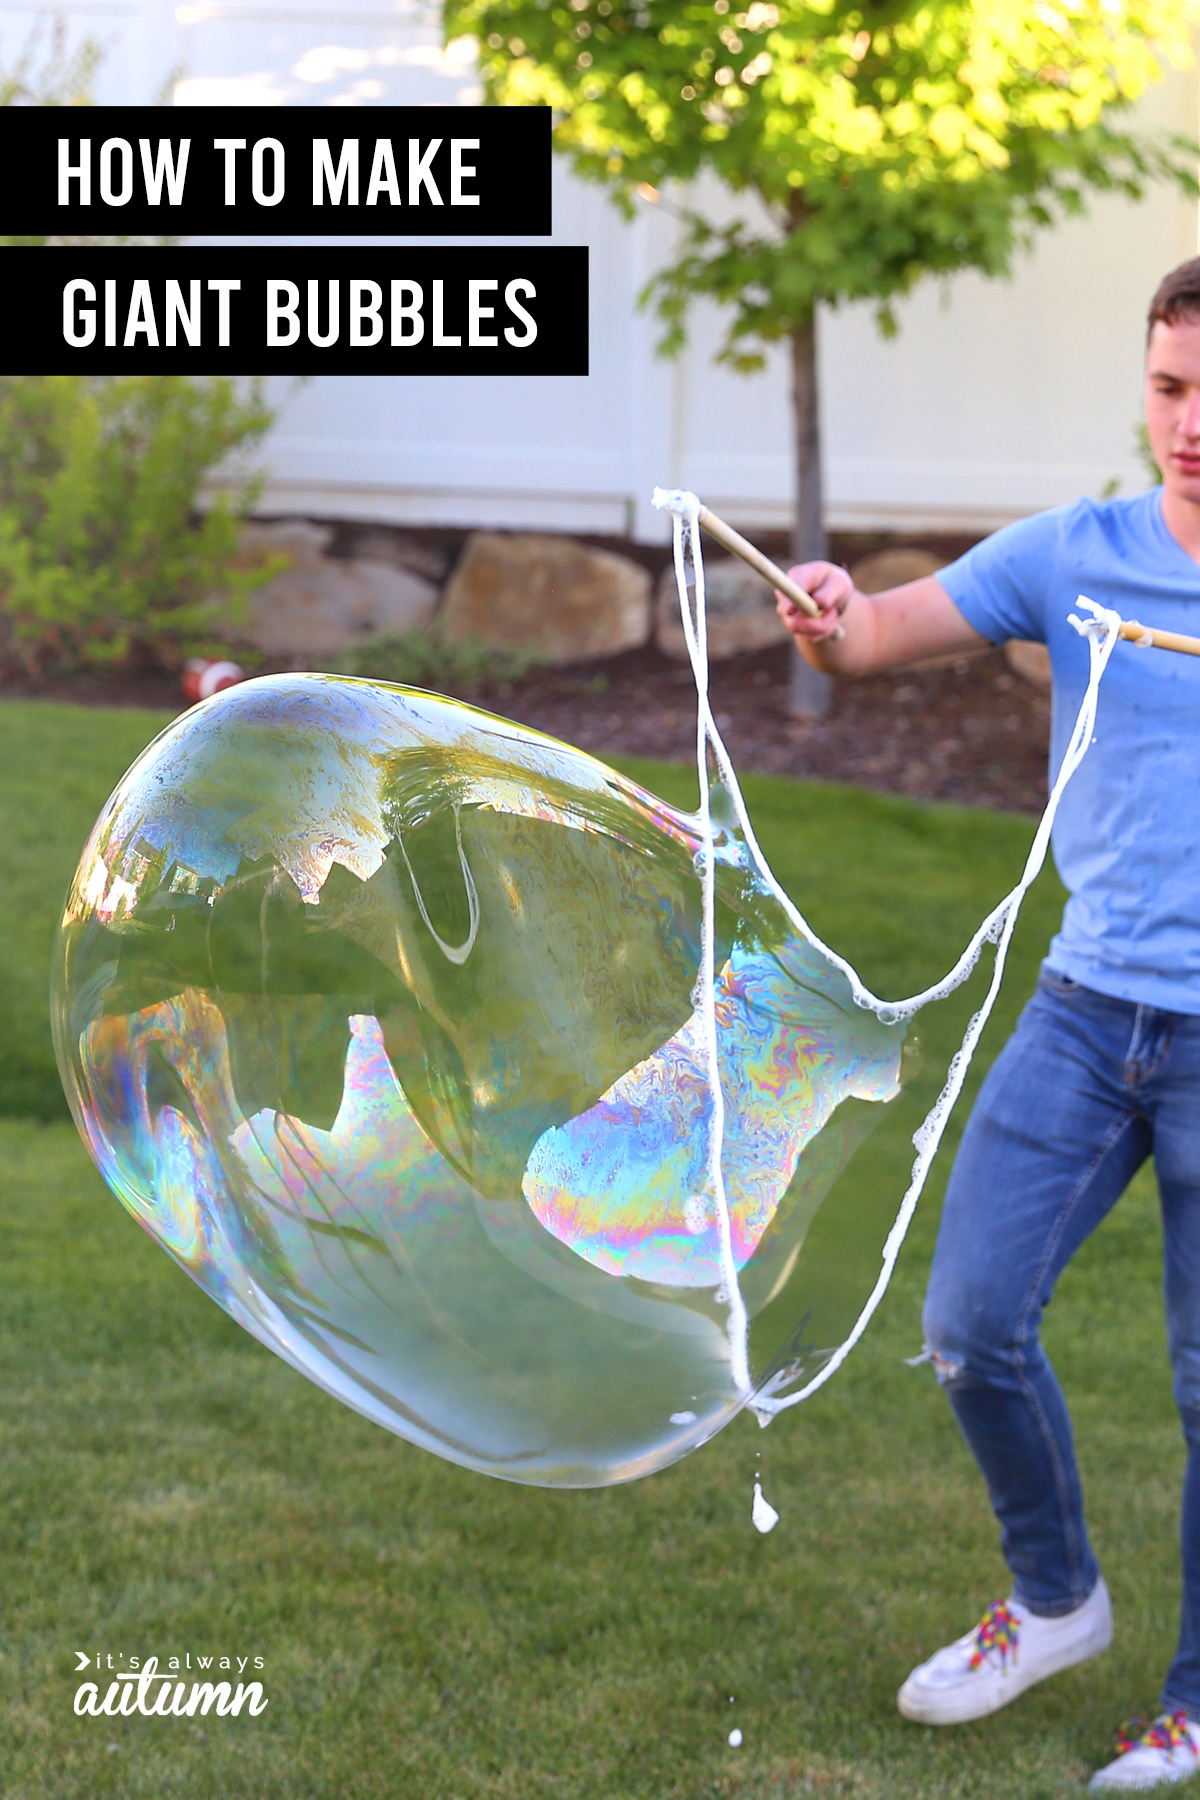 Boy blowing giant bubble with word: How to make giant bubbles